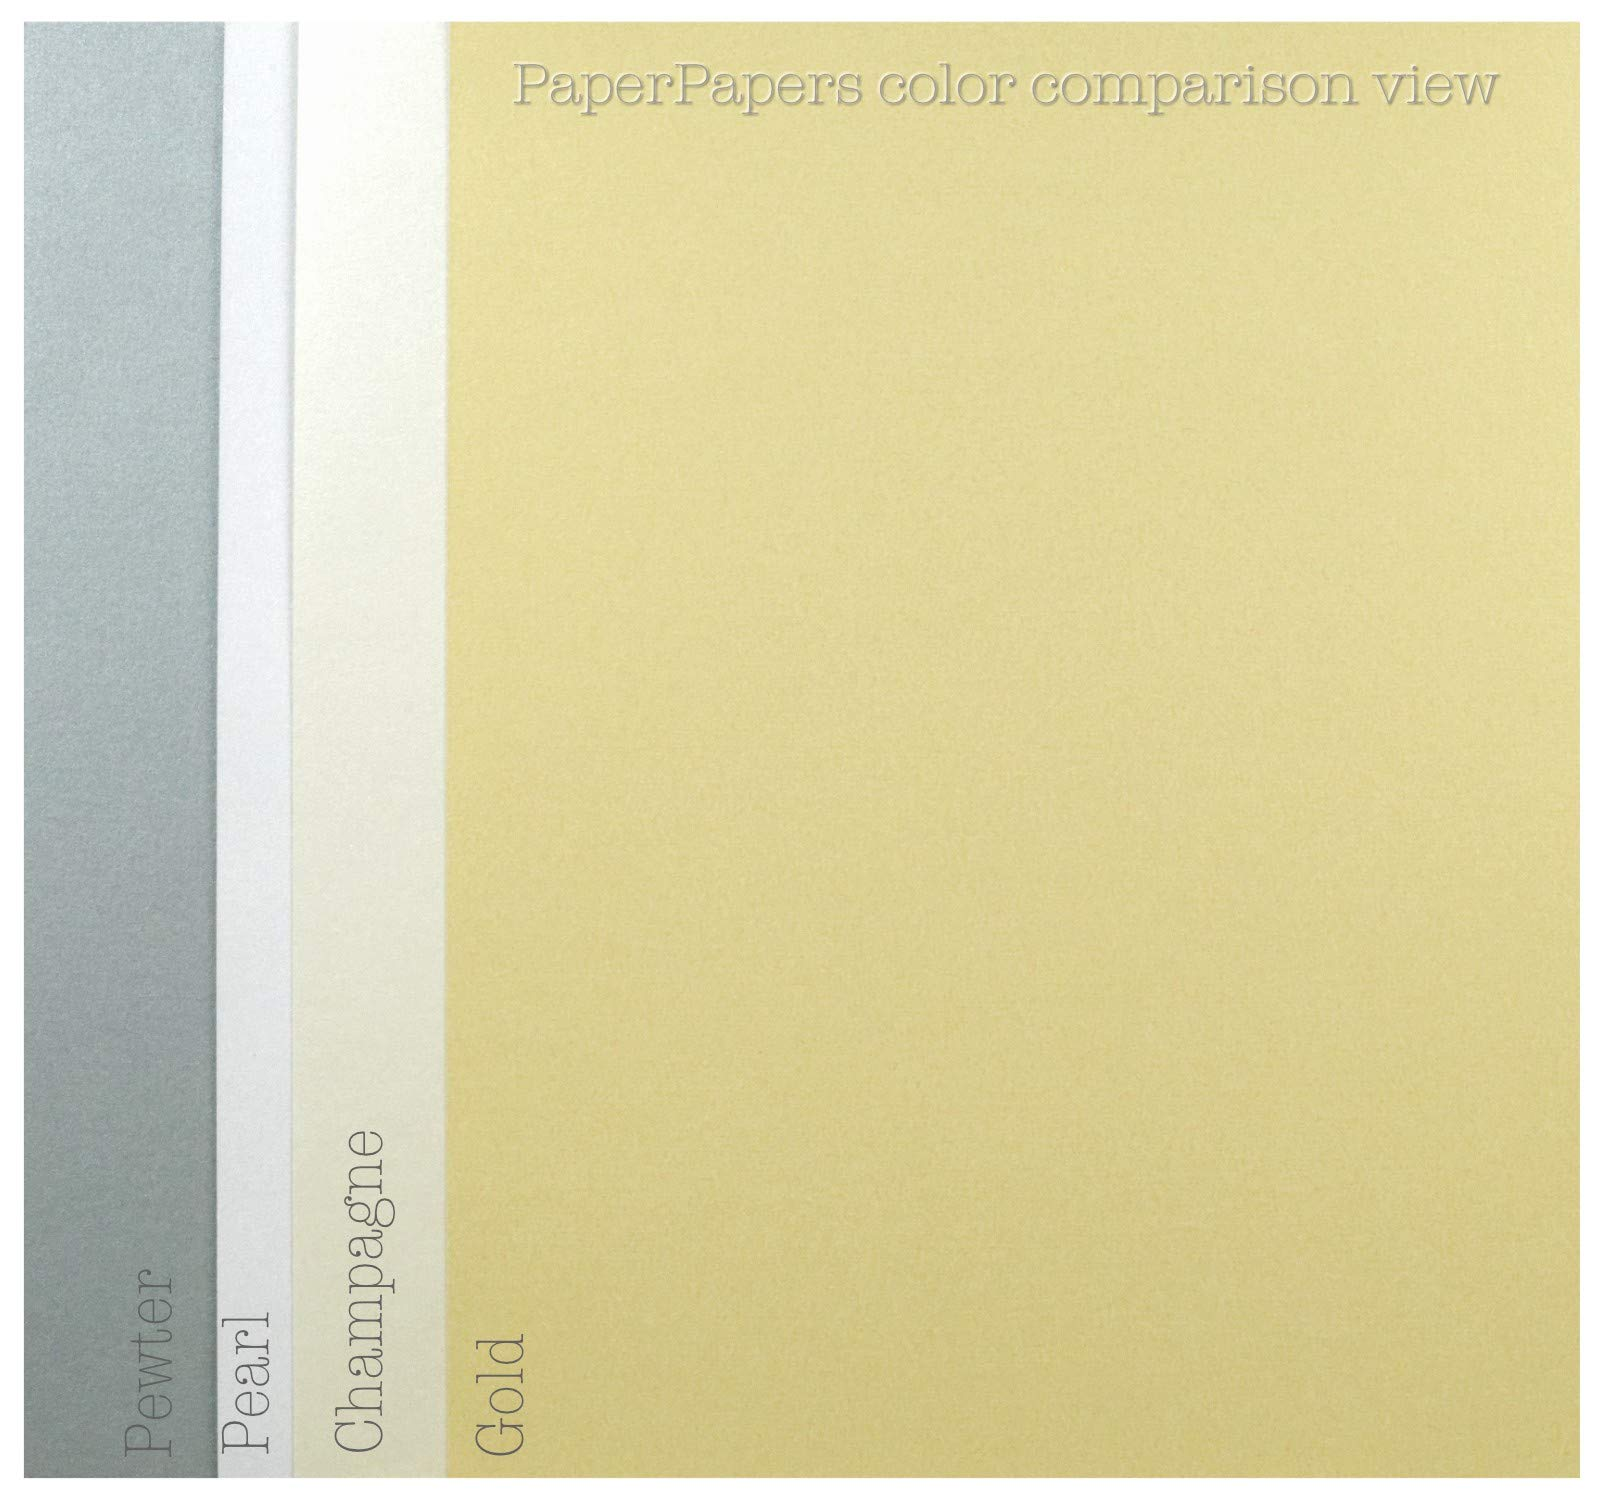 Shimmer Off-White Champagne Digital 12-x-18 32T Lightweight Multi-use Paper 200-pk - PaperPapers 2pBasics 118 GSM (32/80lb Text) Large size Everyday Metallic Paper for Professionals, Designers and DIY by 2pBasics